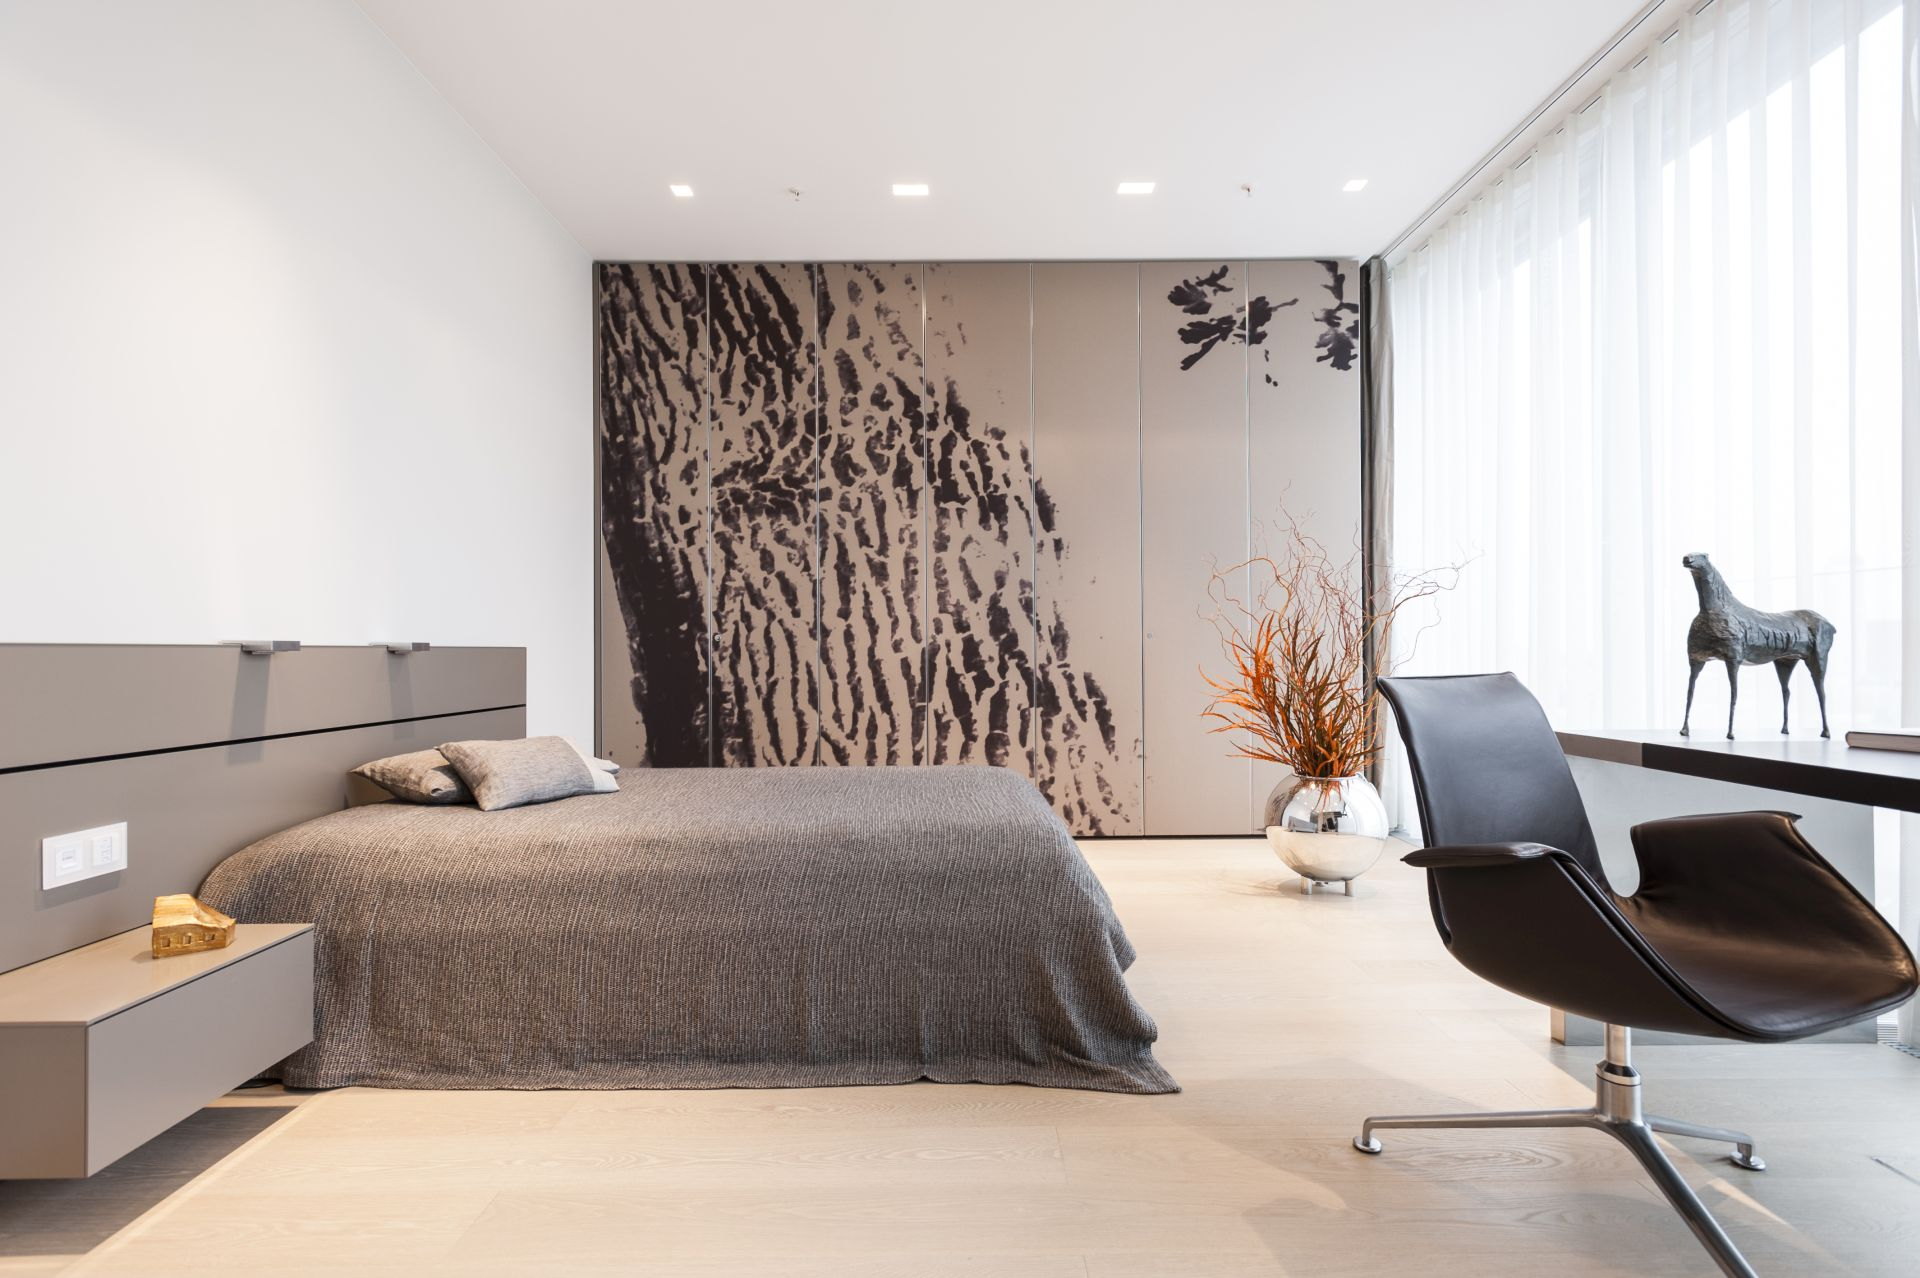 In the bedroom, prints inspired by the natural world. This creates the illusion of a much large room.